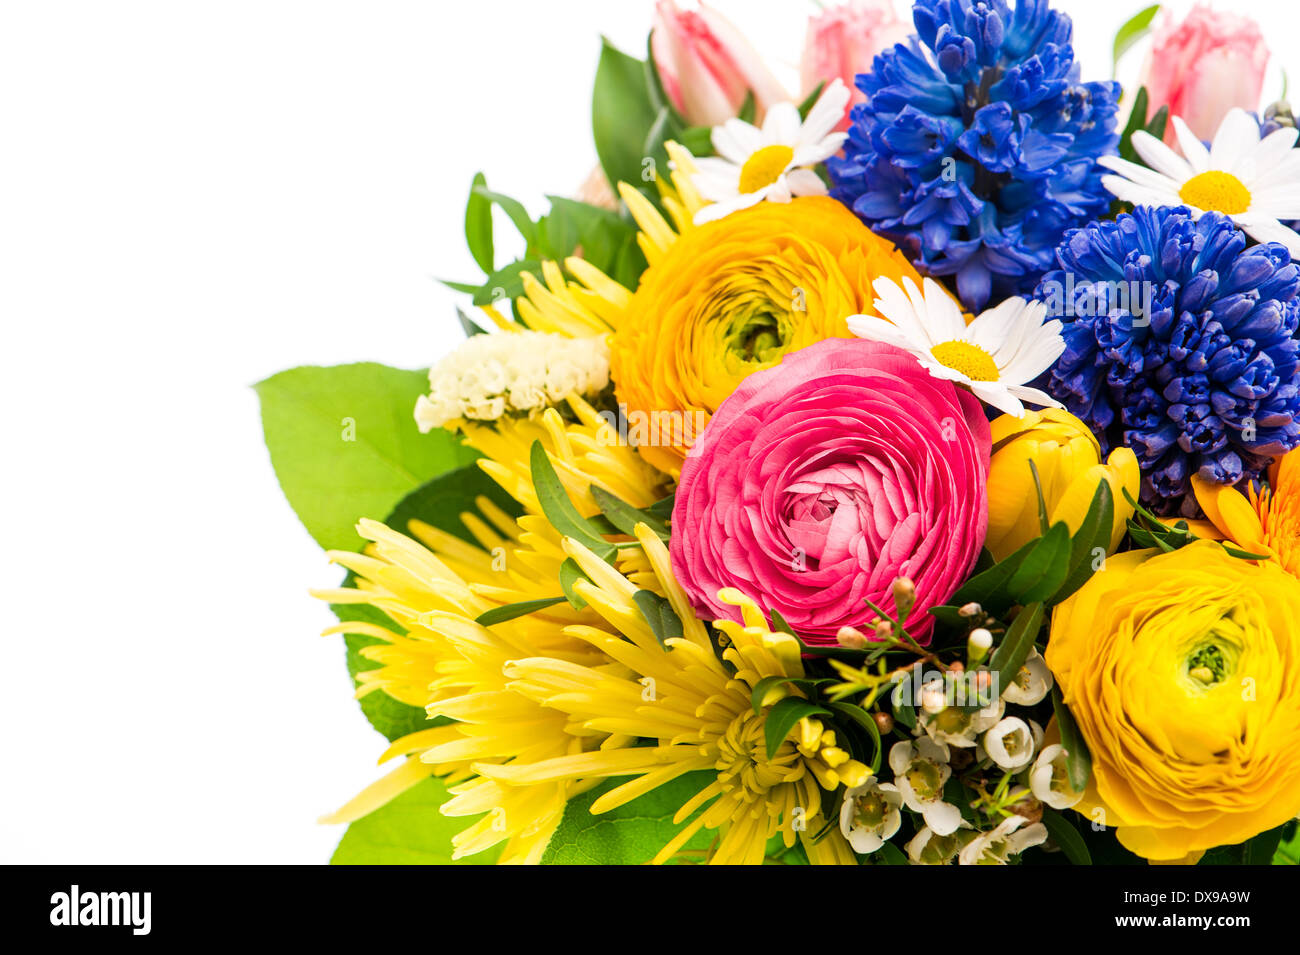 beautiful bouquet of colorful spring flowers in a glass vase. tulip, ranunculus, hyacinth, daisy, gerber - Stock Image